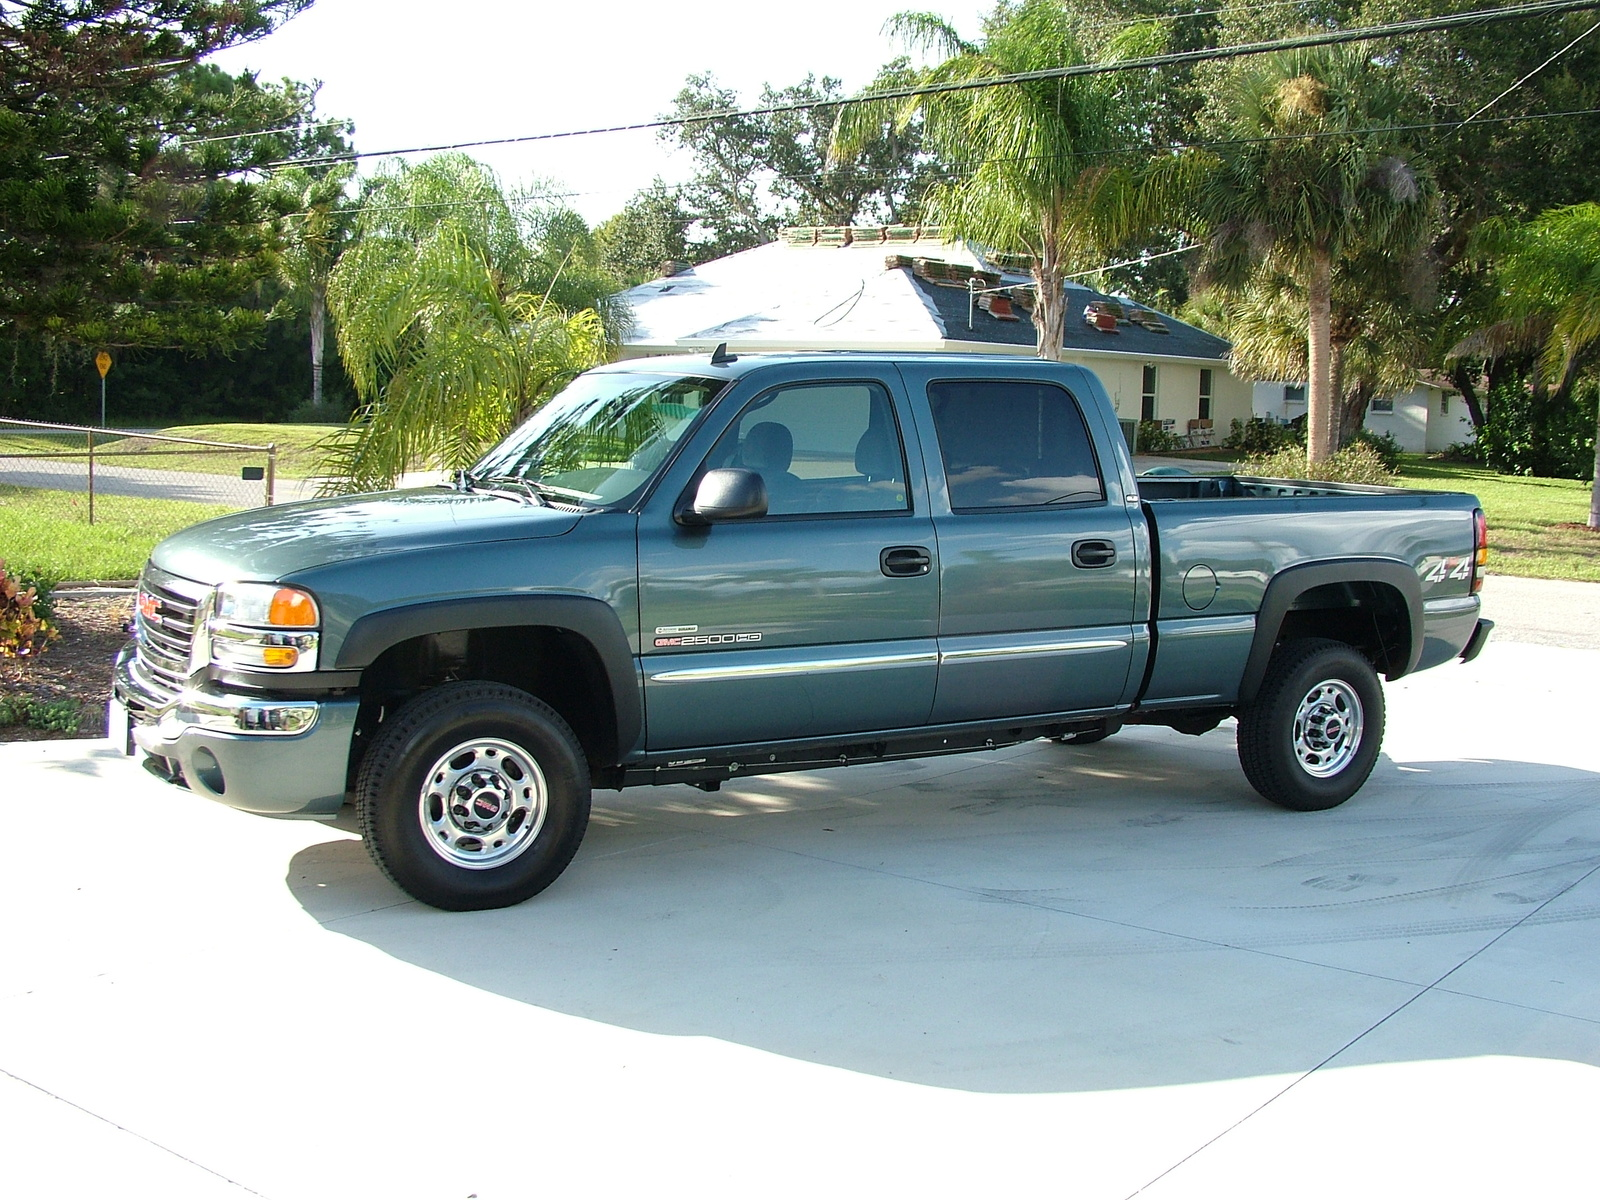 GMC Sierra 2500hd #7